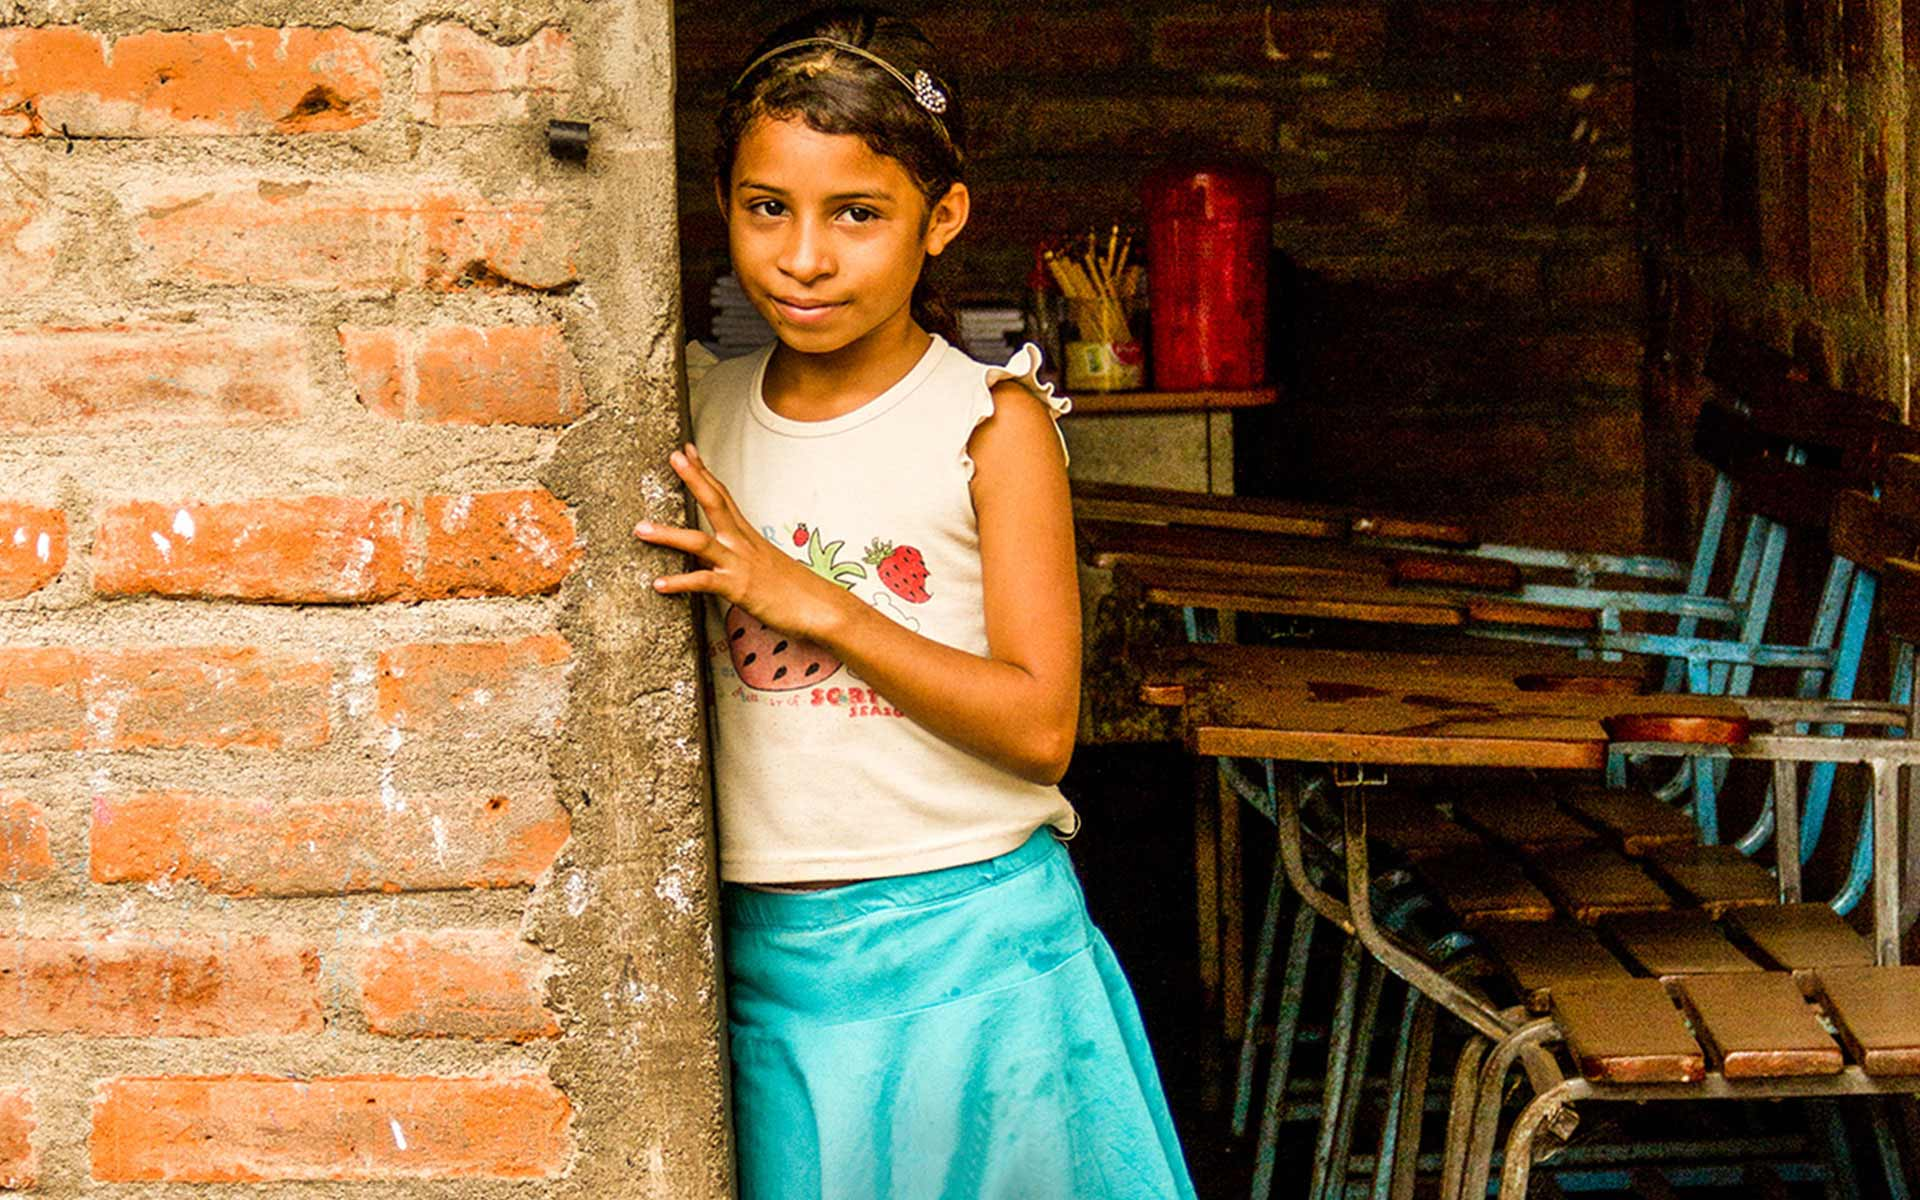 A girl standing in the doorway of her classroom